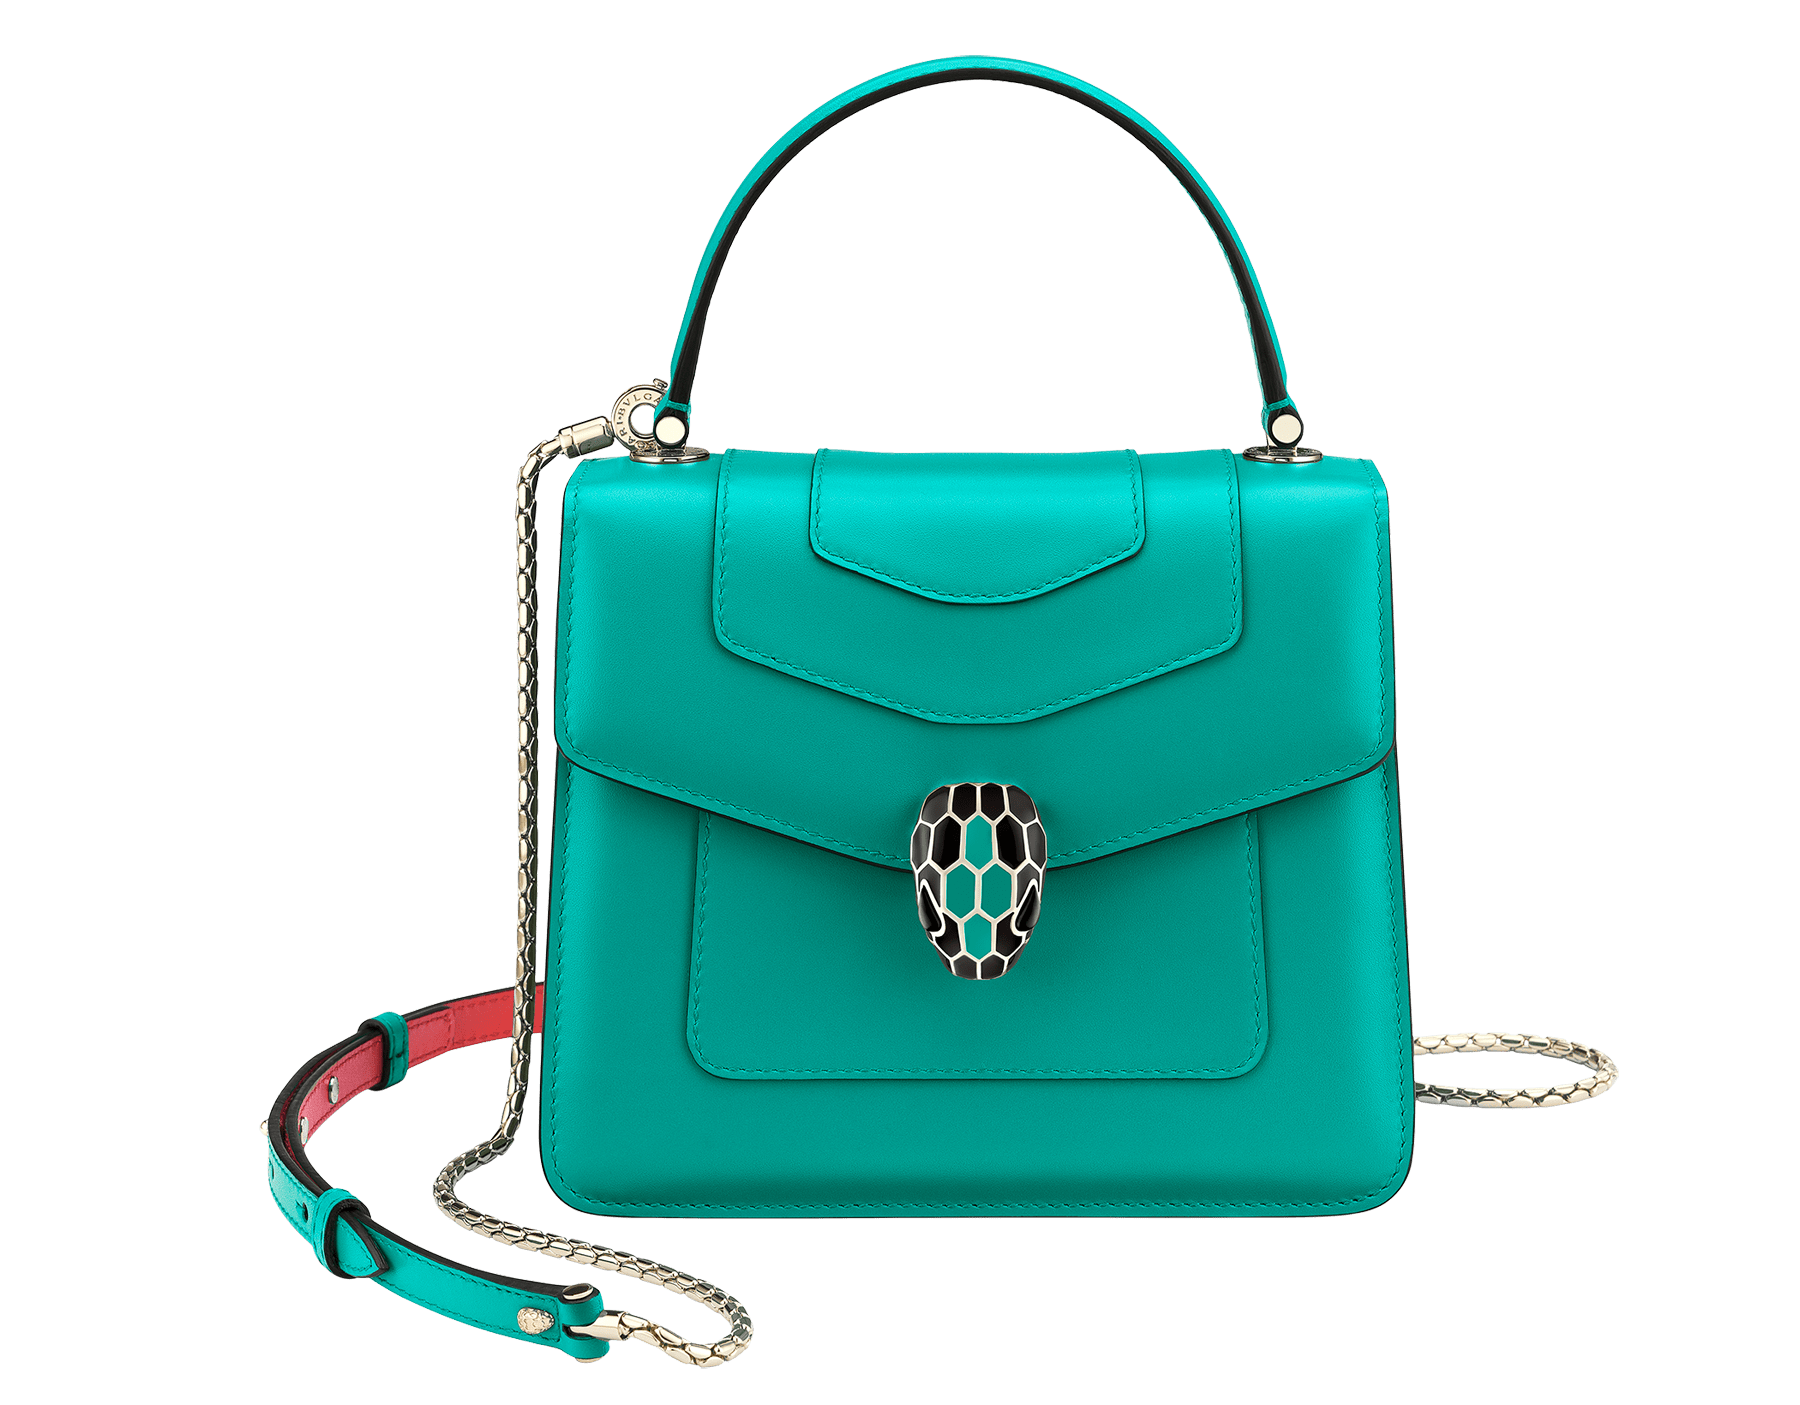 "Borsa a tracolla ""Serpenti Forever"" in vitello turchese tropicale con lati a contrasto in vitello color corallo. Iconica chiusura Serpenti in ottone placcato oro chiaro e smalto nero e turchese tropicale con occhi in onice nera. 287964 image 1"